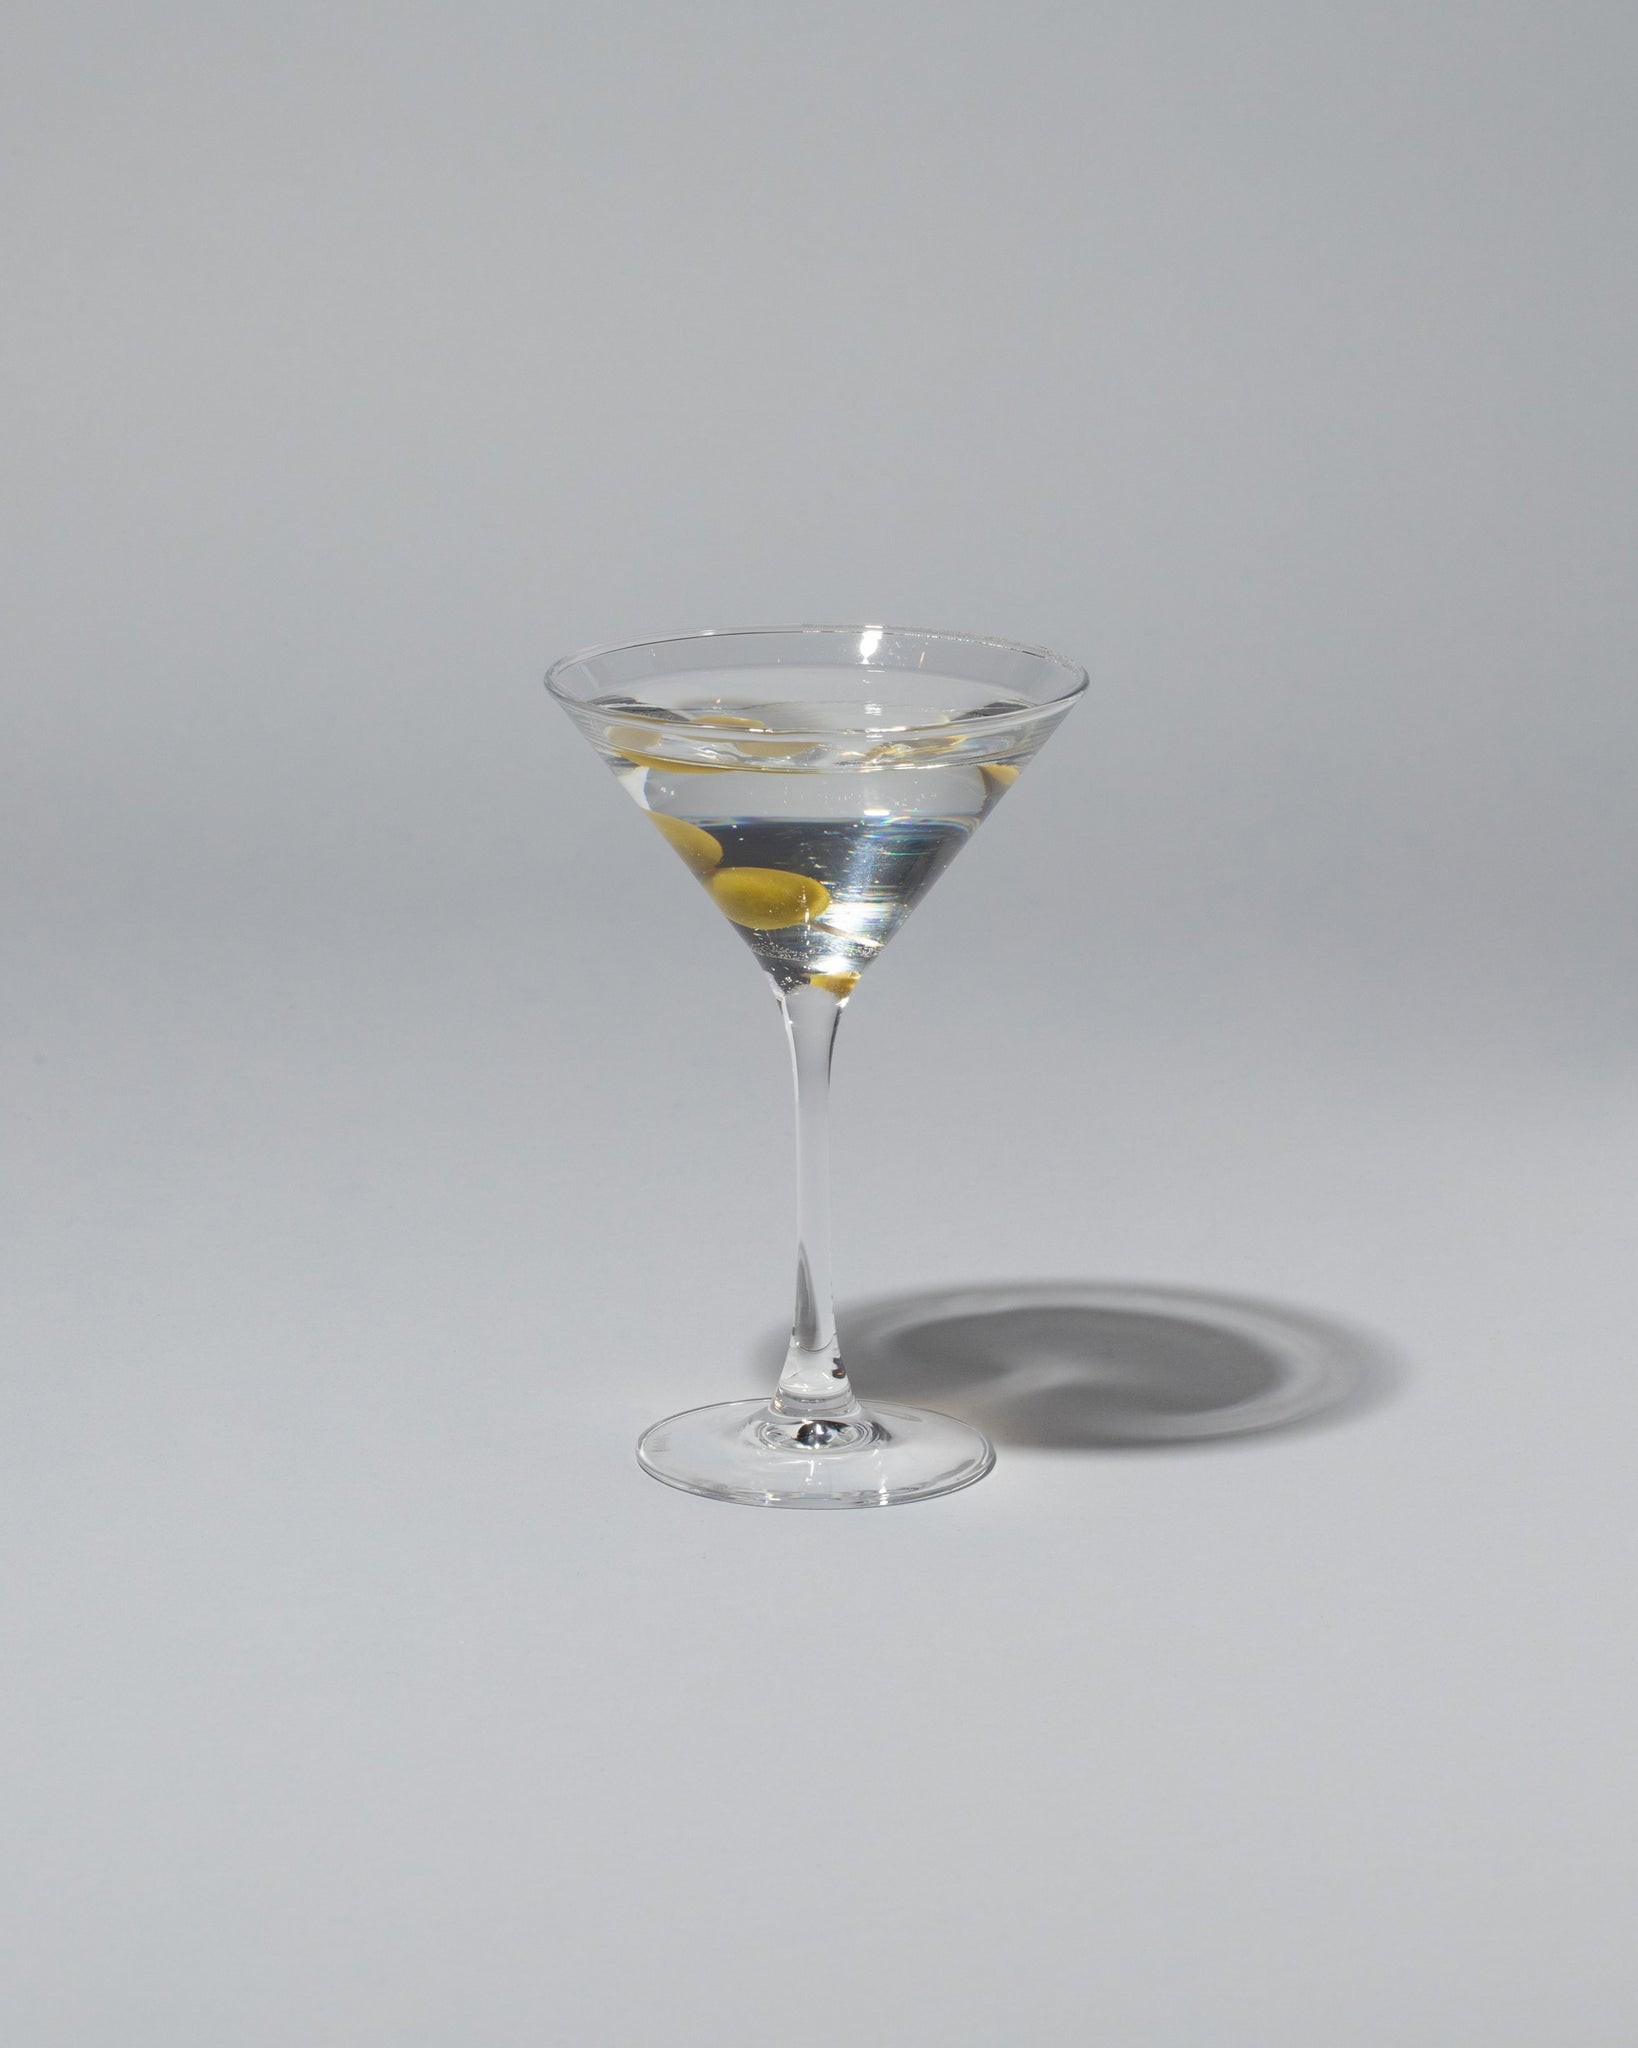 Spills Martini on light color background.